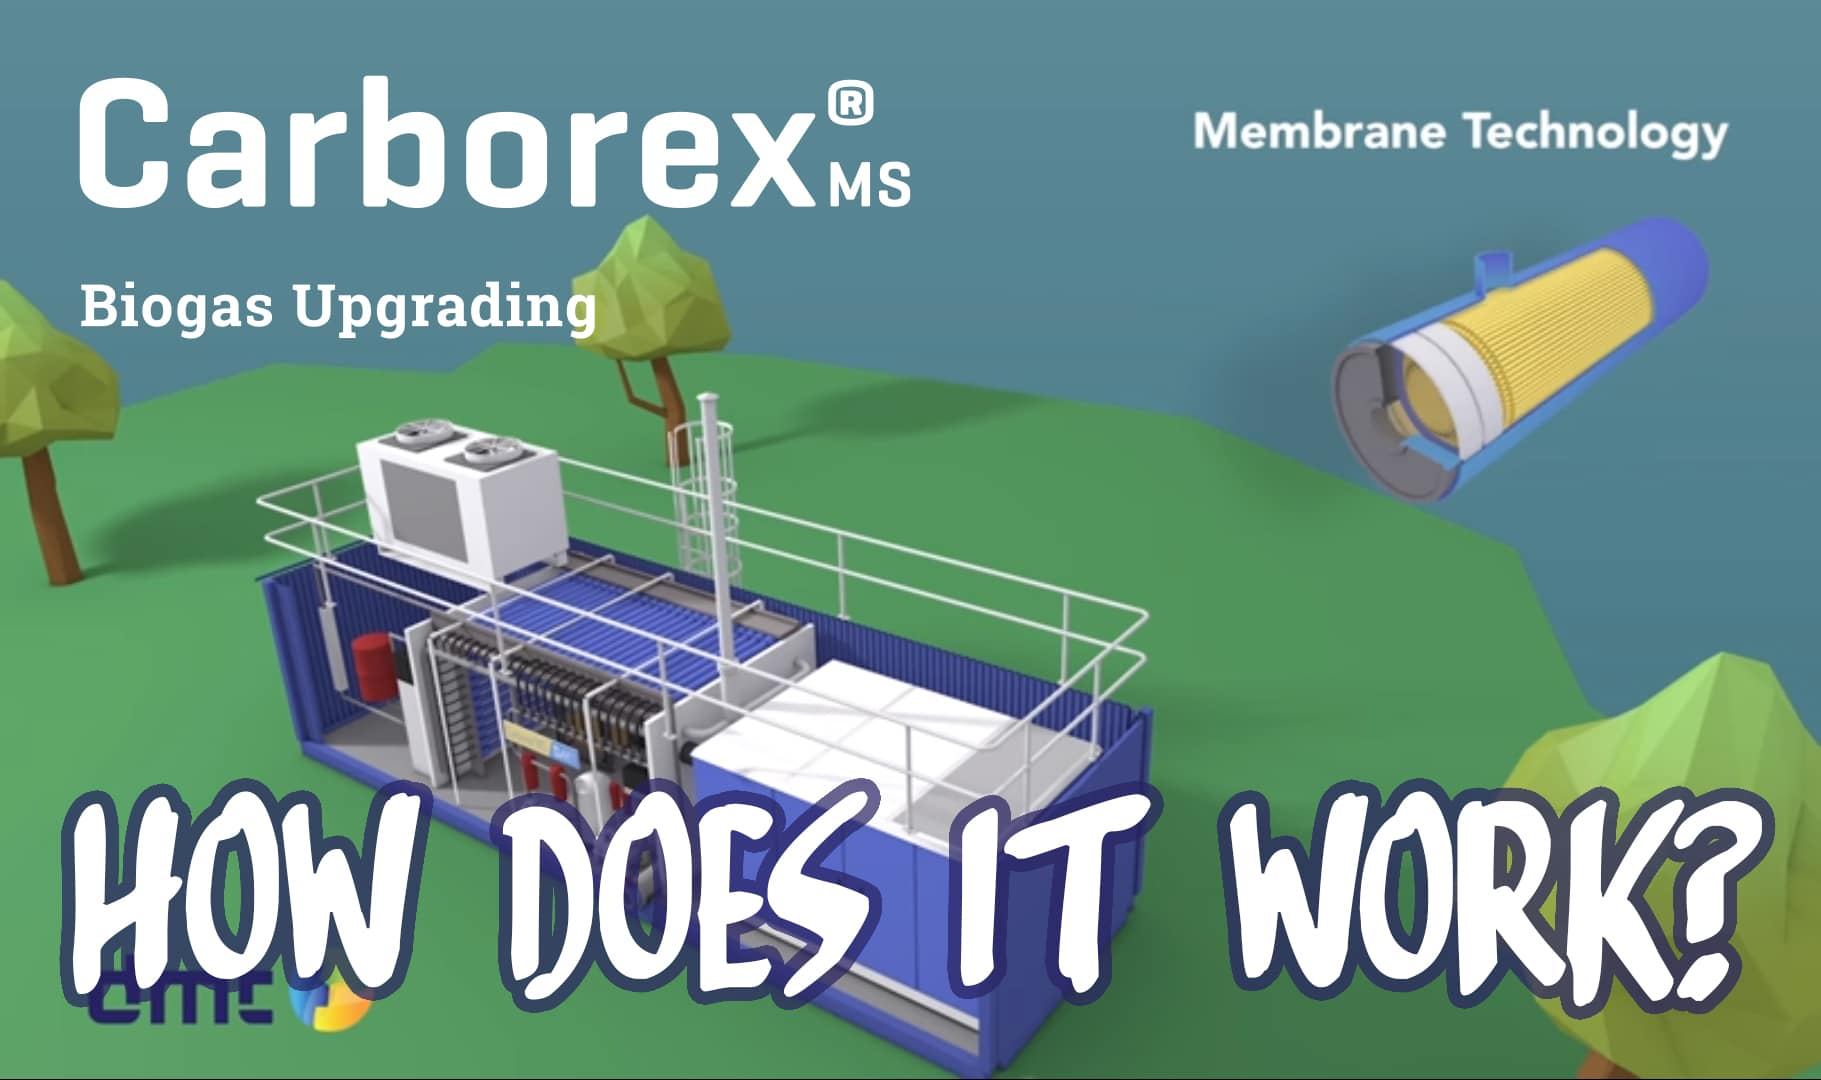 Upgrade to the Carborex® MS.